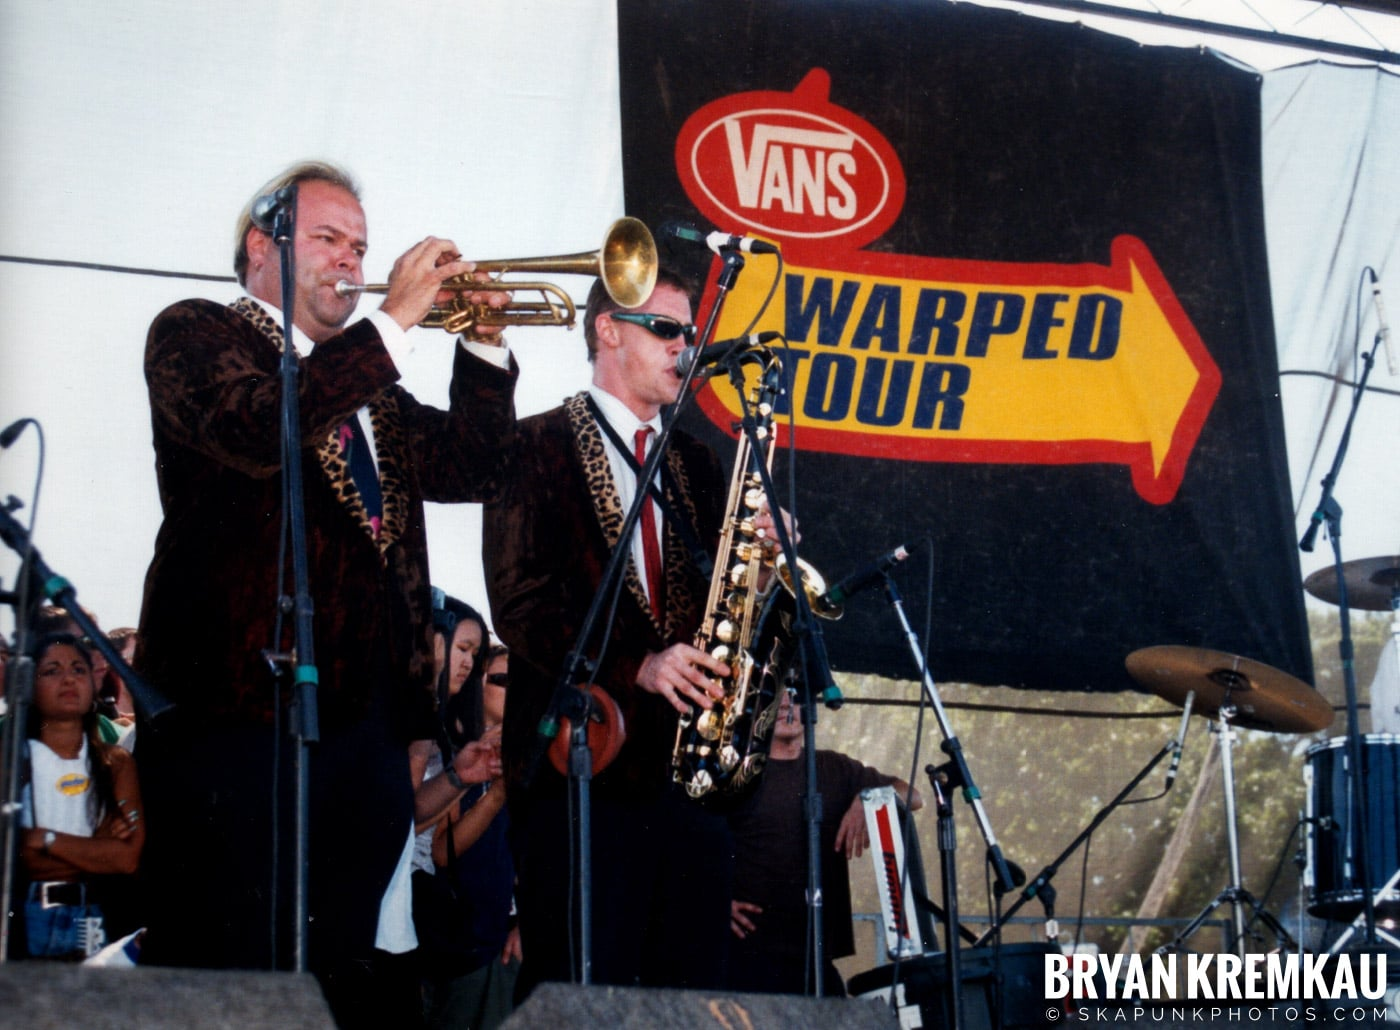 Cherry Poppin' Daddies @ Vans Warped Tour, Randall's Island, NYC - 8.1.98 (9)